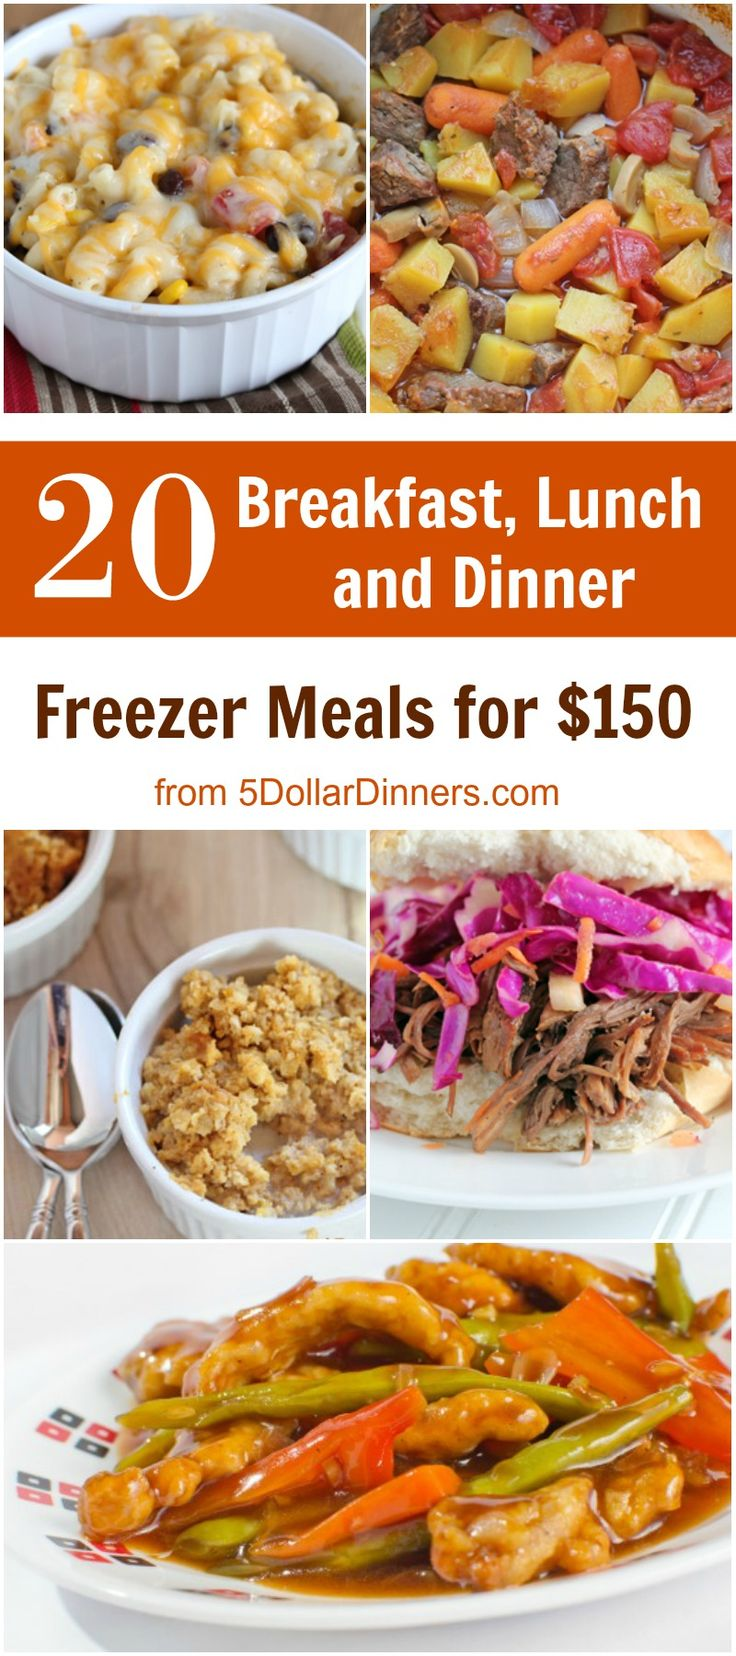 New Healthy Meal Plan: 20 Breakfast, Lunch & Dinner Meals for $150.  Stop stressing about meal planning this busy holiday season - the work has been done for you!  happydealhappyday.com